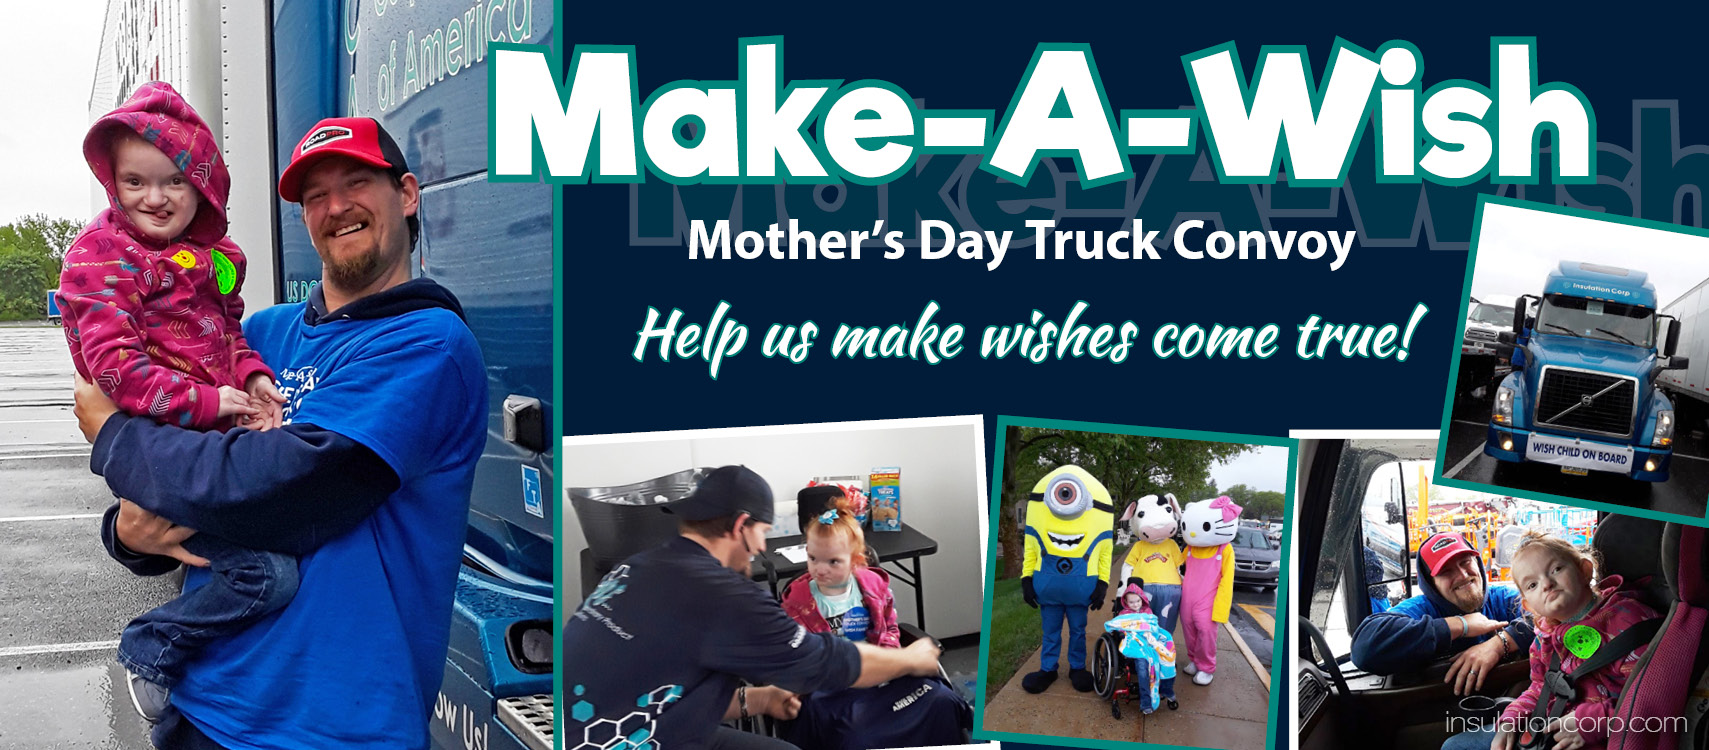 Make-A-Wish Mother's Day Truck Convoy 2020